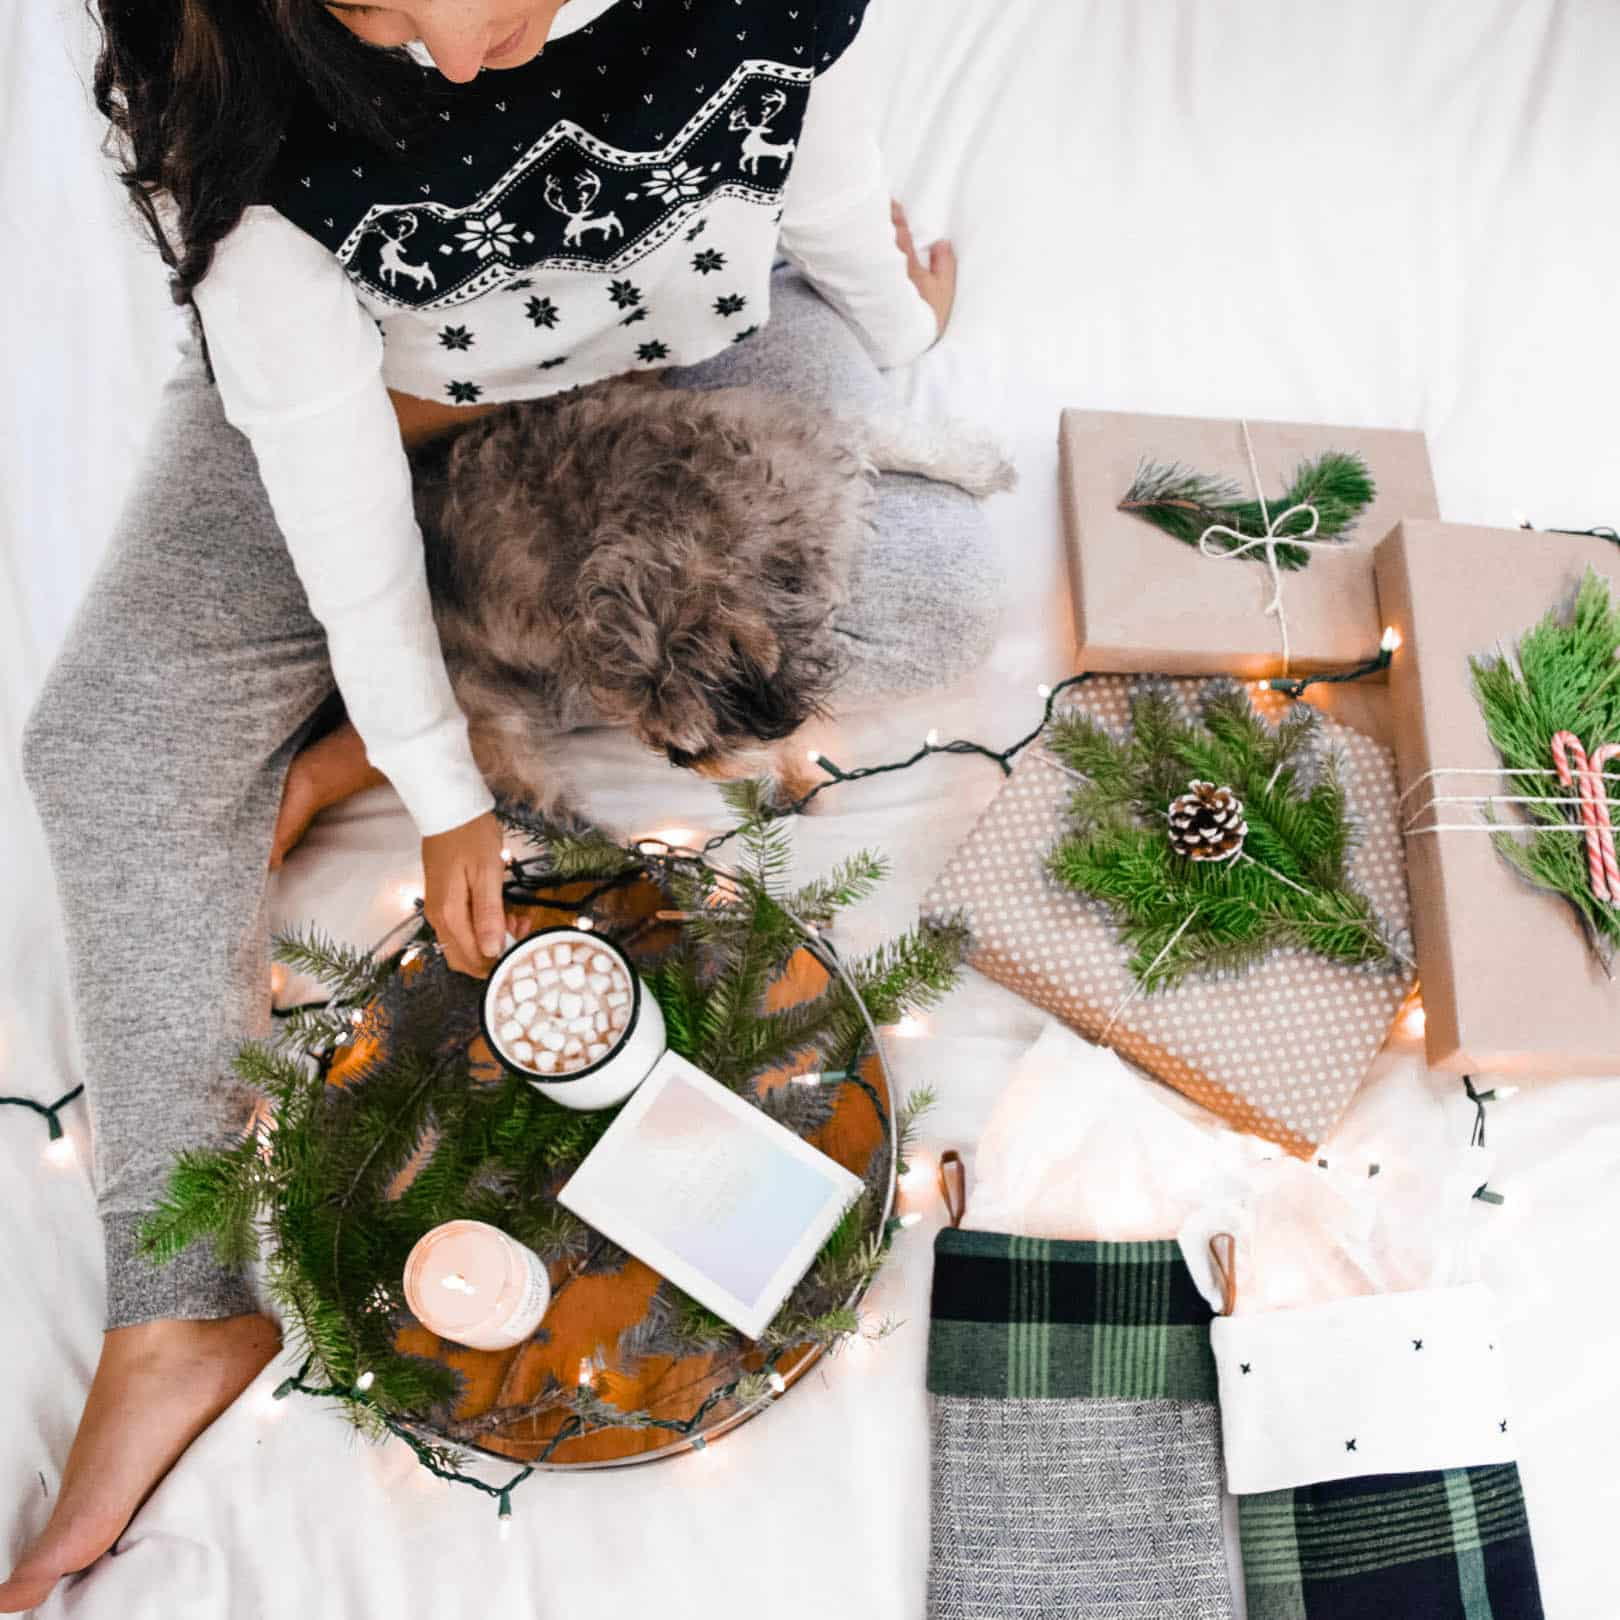 How To Spend The Week Between Christmas and New Years. how to spend winter vacation, self care ideas for how to spend time between the holidays staycation, #newyears, #christmas, #winterholiday, #wintervacation, #winterbreak, #personalgrowthblog, #selfcarestaycation, #selfcare